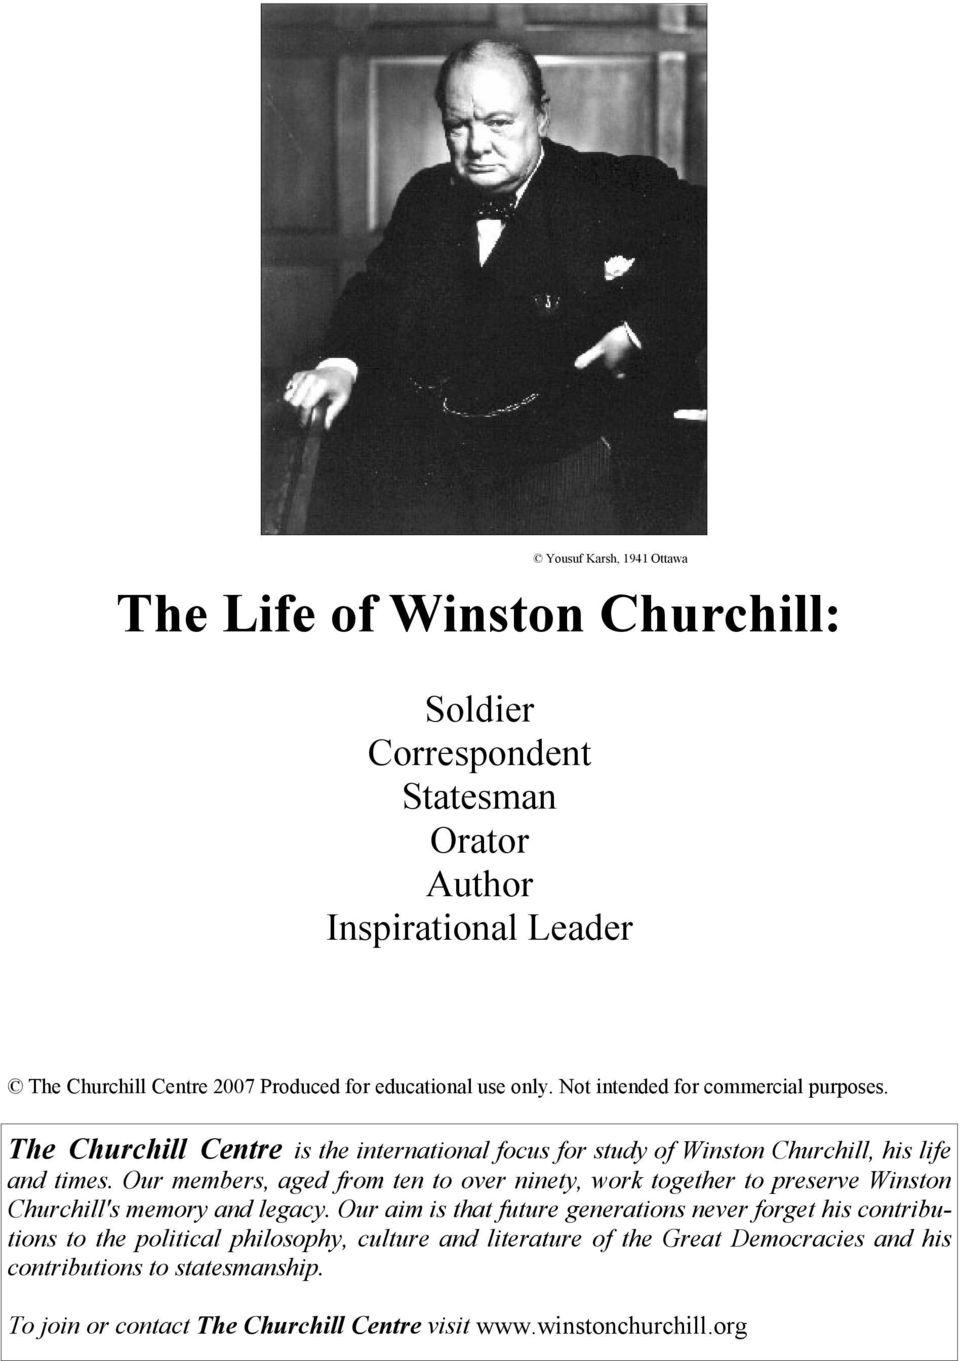 Our members, aged from ten to over ninety, work together to preserve Winston Churchill's memory and legacy.